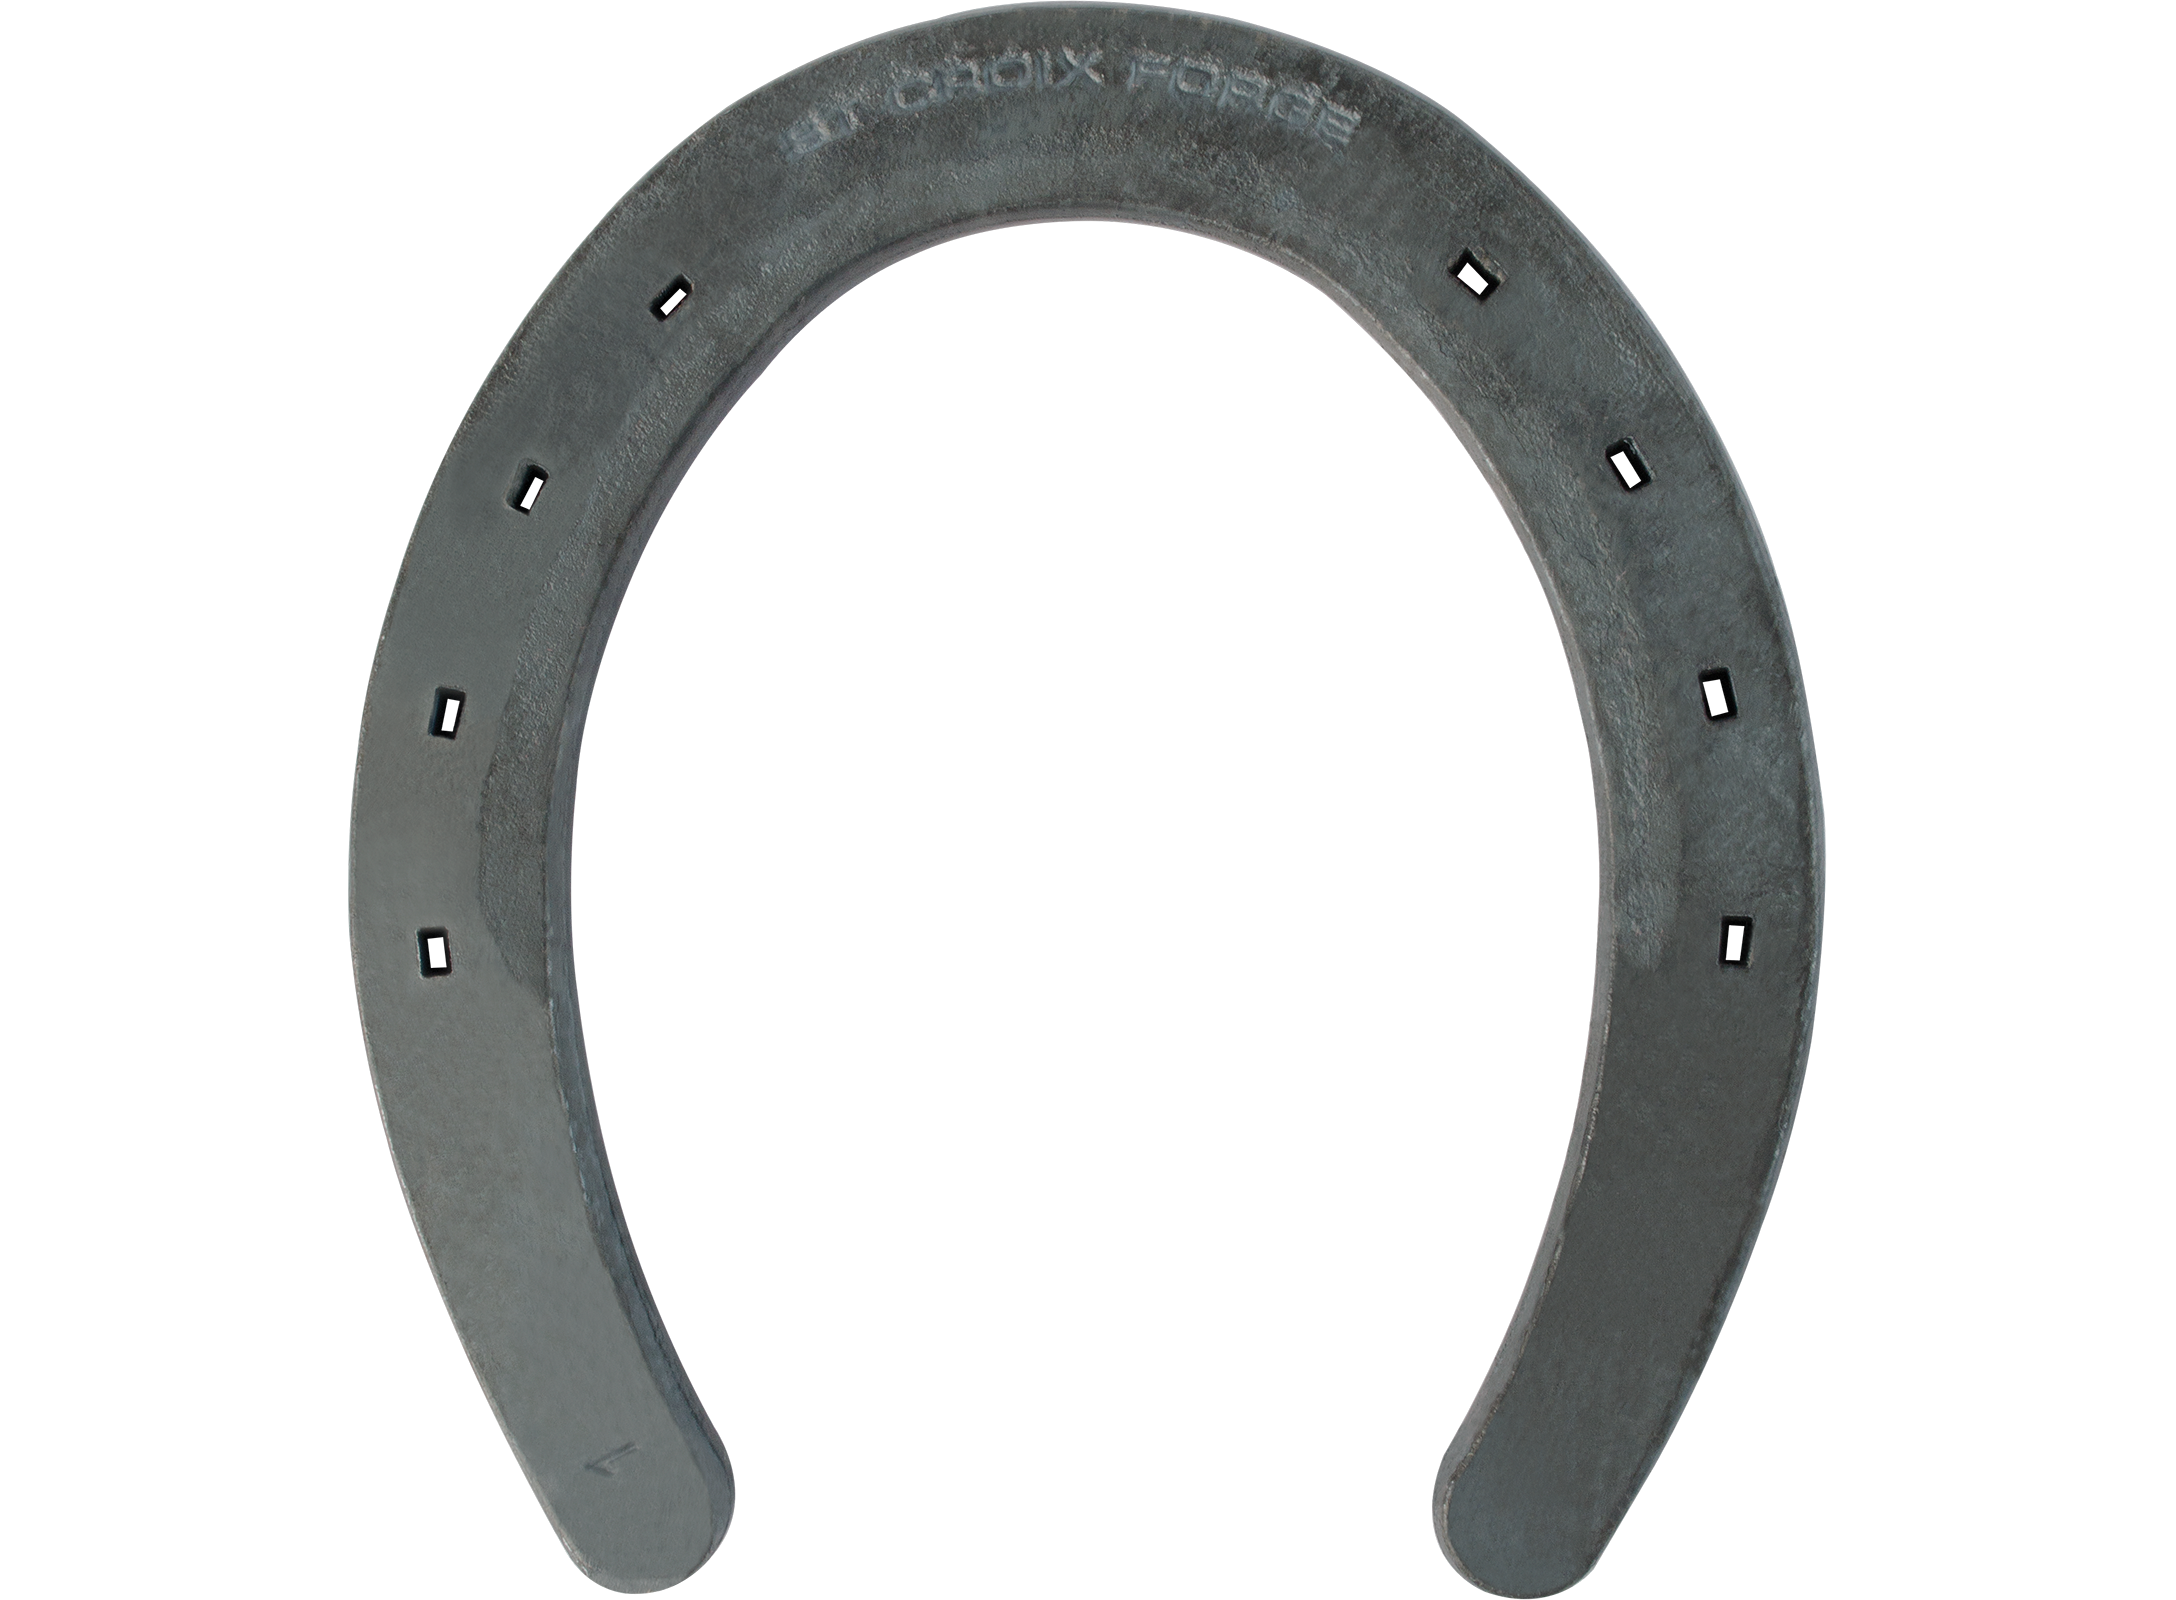 St. Croix Rim V-crease horseshoe, hoof side view